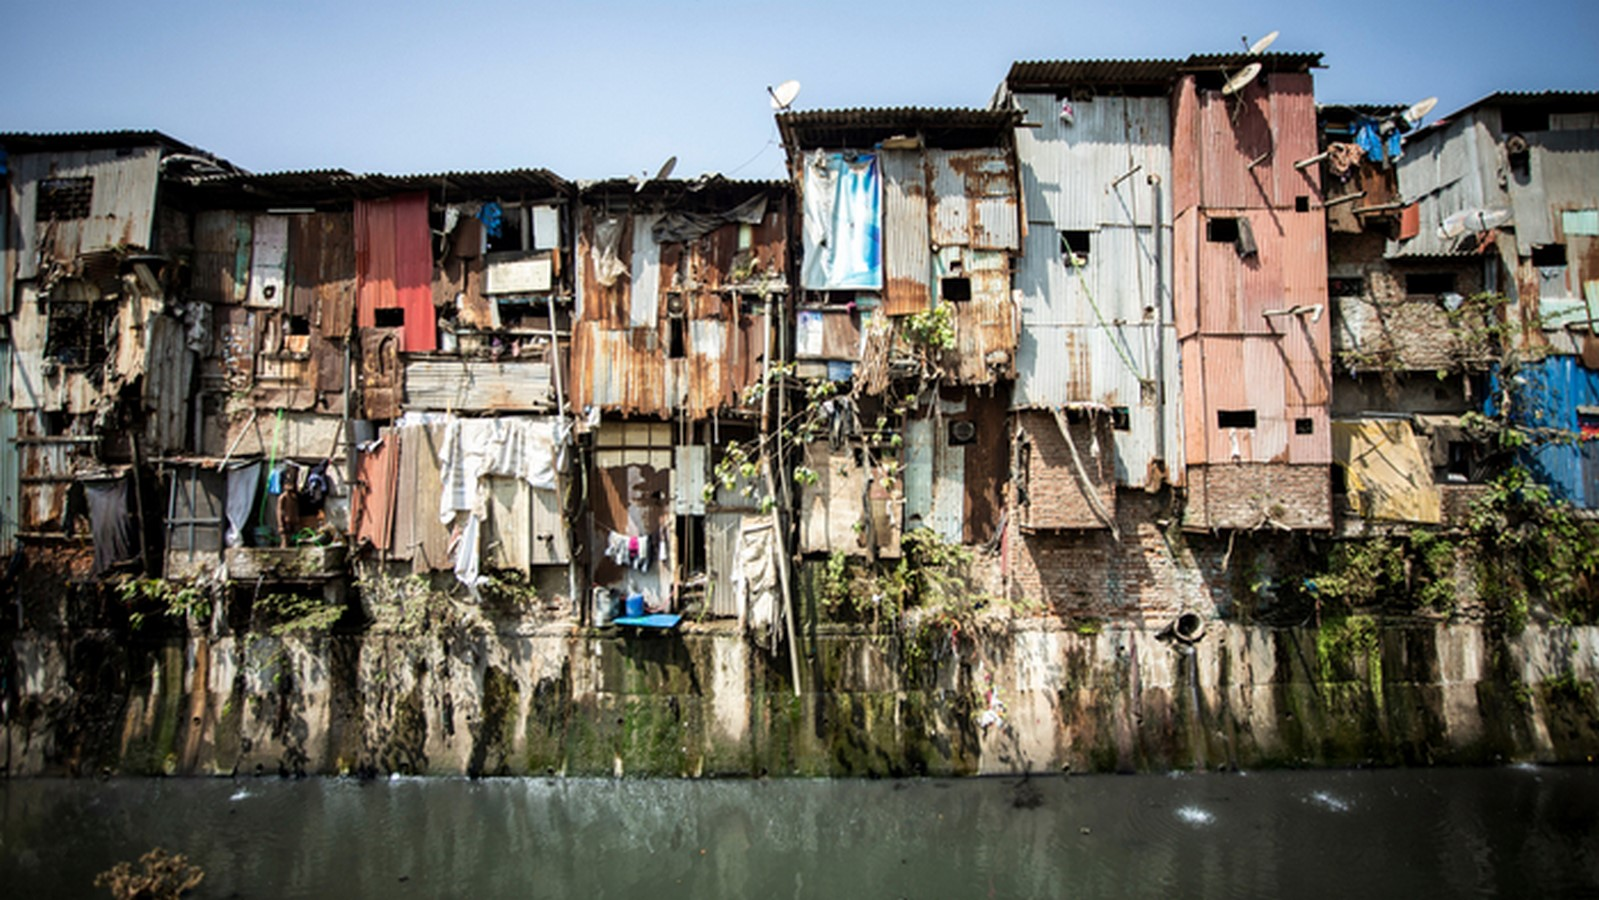 Can architecture and design fill the inequality gap in our society? - Sheet2